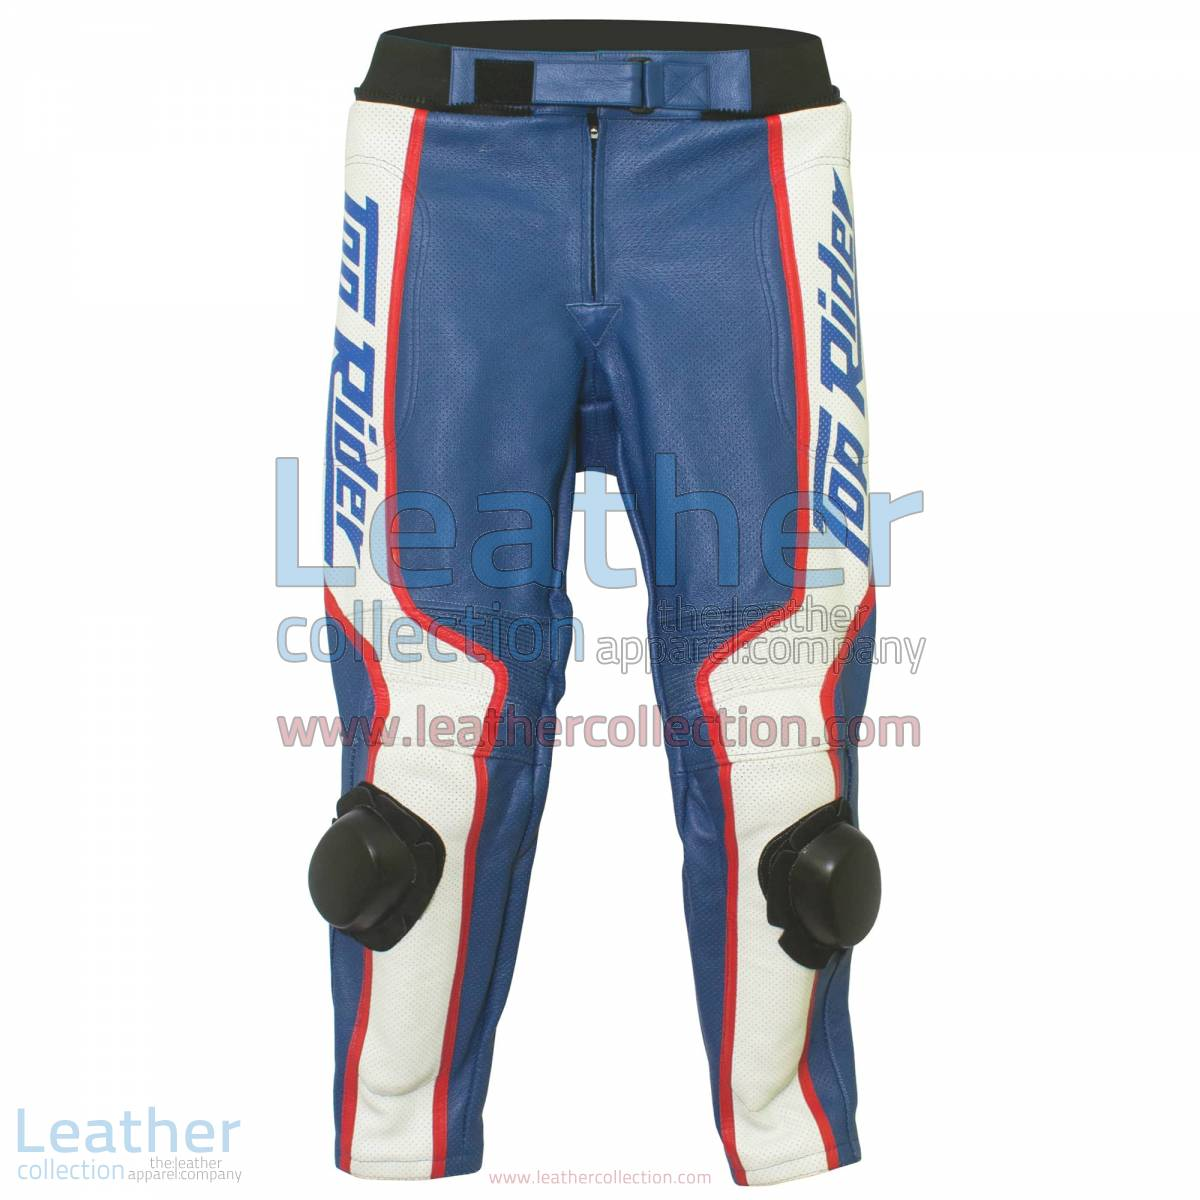 Freddie Spencer Honda Daytona 1985 Motorcycle Racing Pant | Motorcycle pants,racing pants